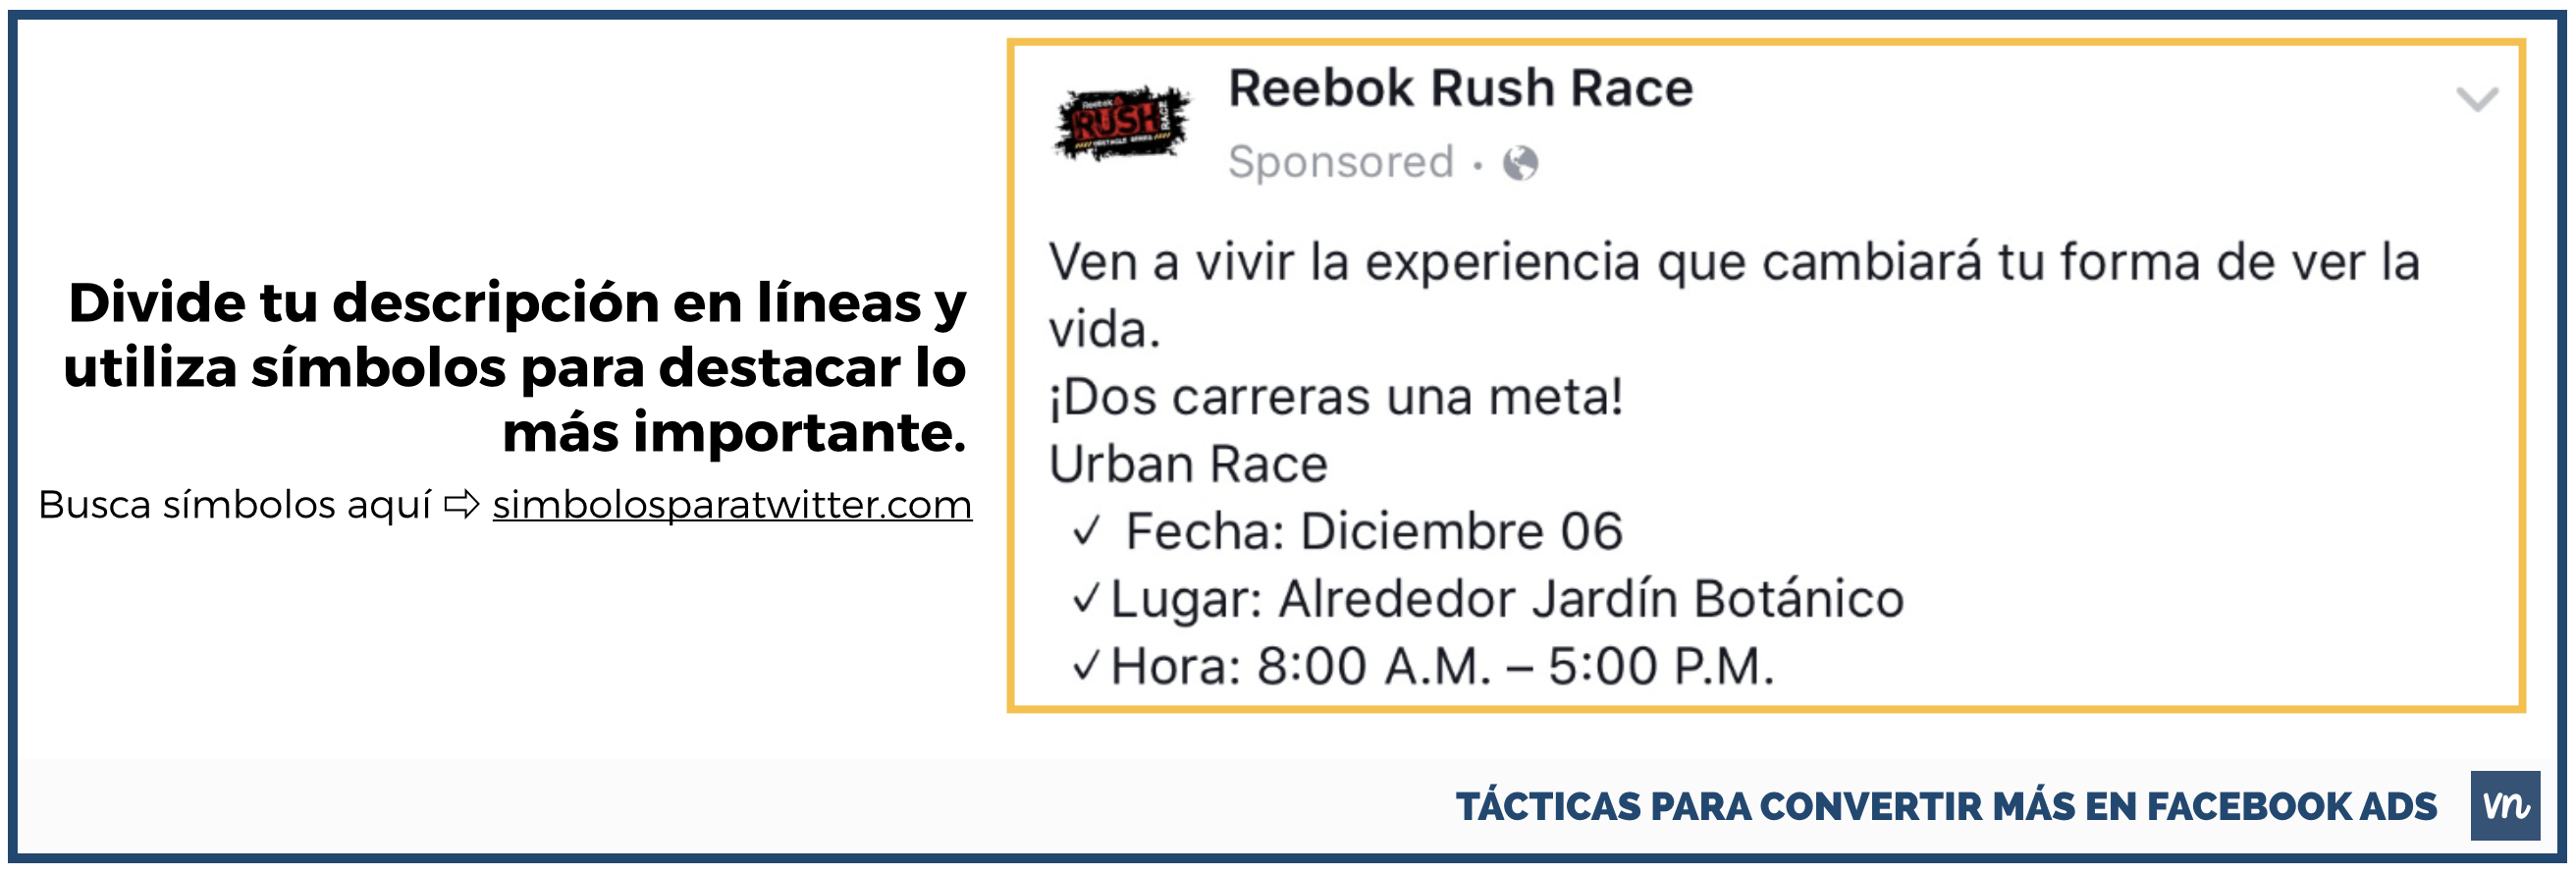 tunea la descripcion anuncios facebook ads